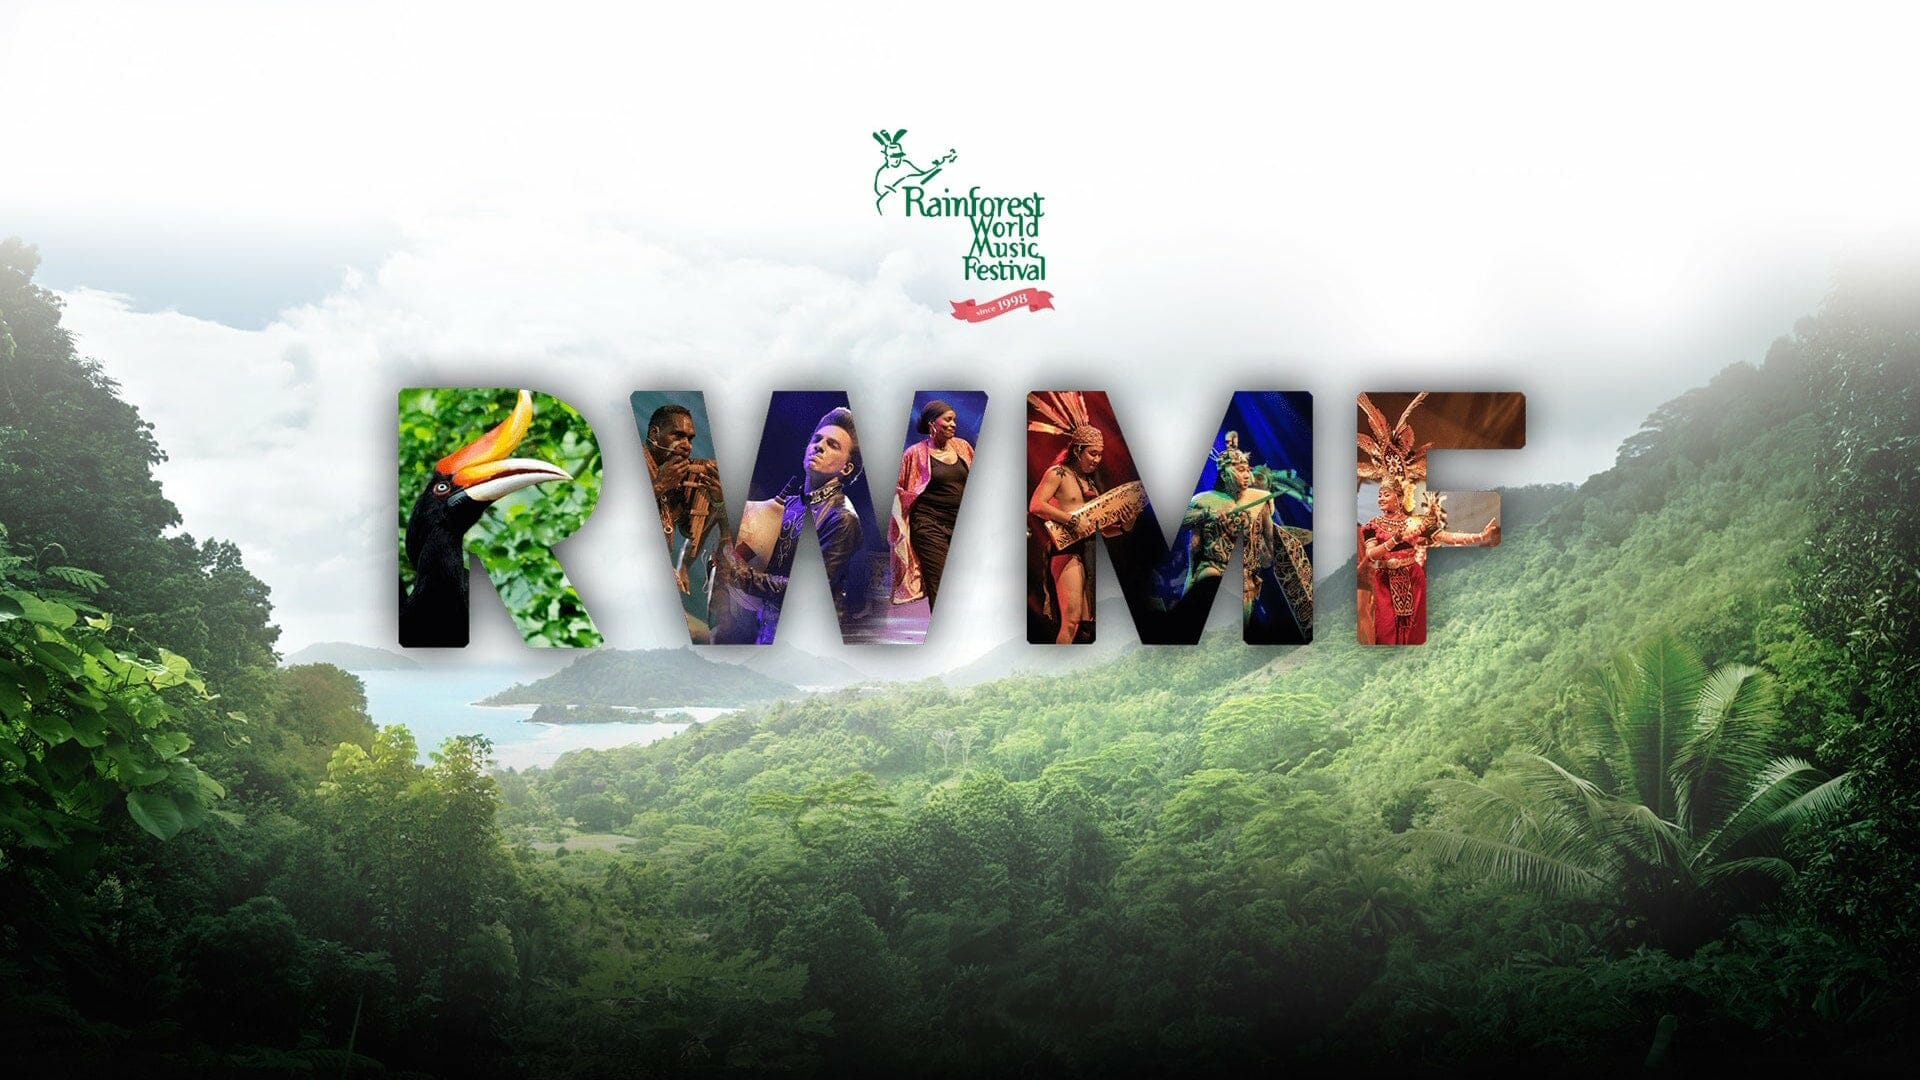 Rainforest World Music Festival - Event Website